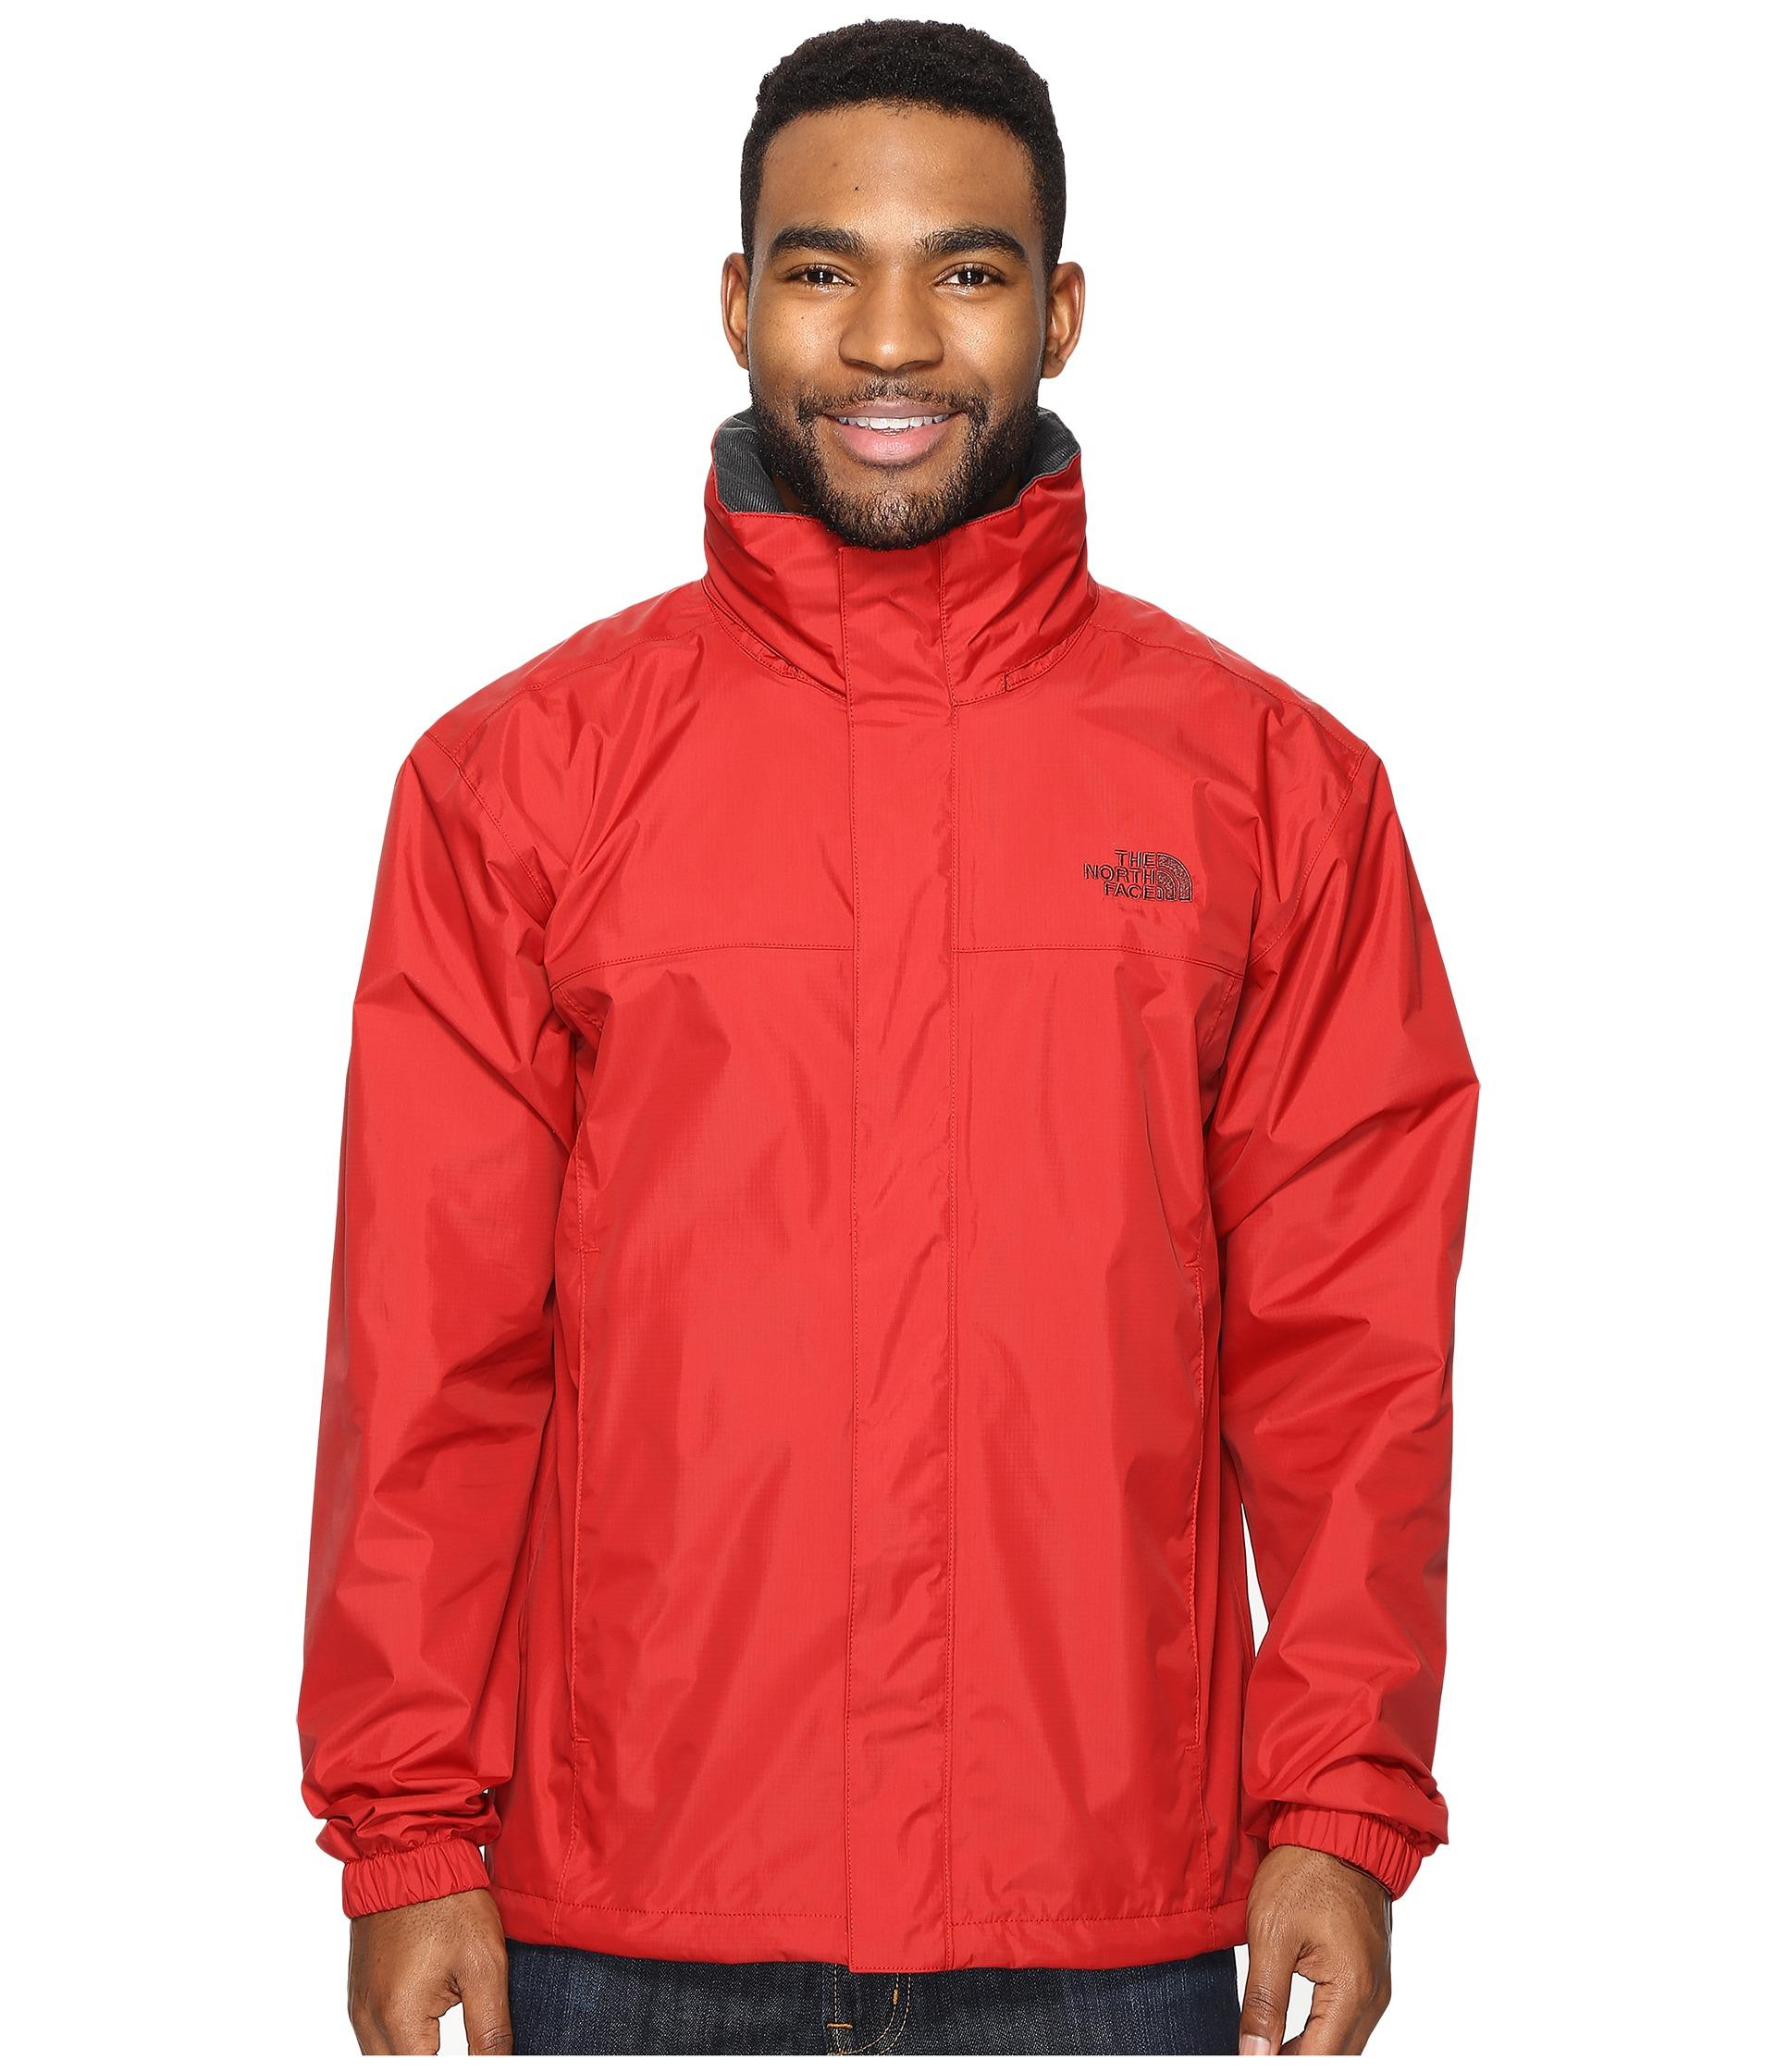 b29a7f44c The North Face Red Resolve 2 Jacket for men